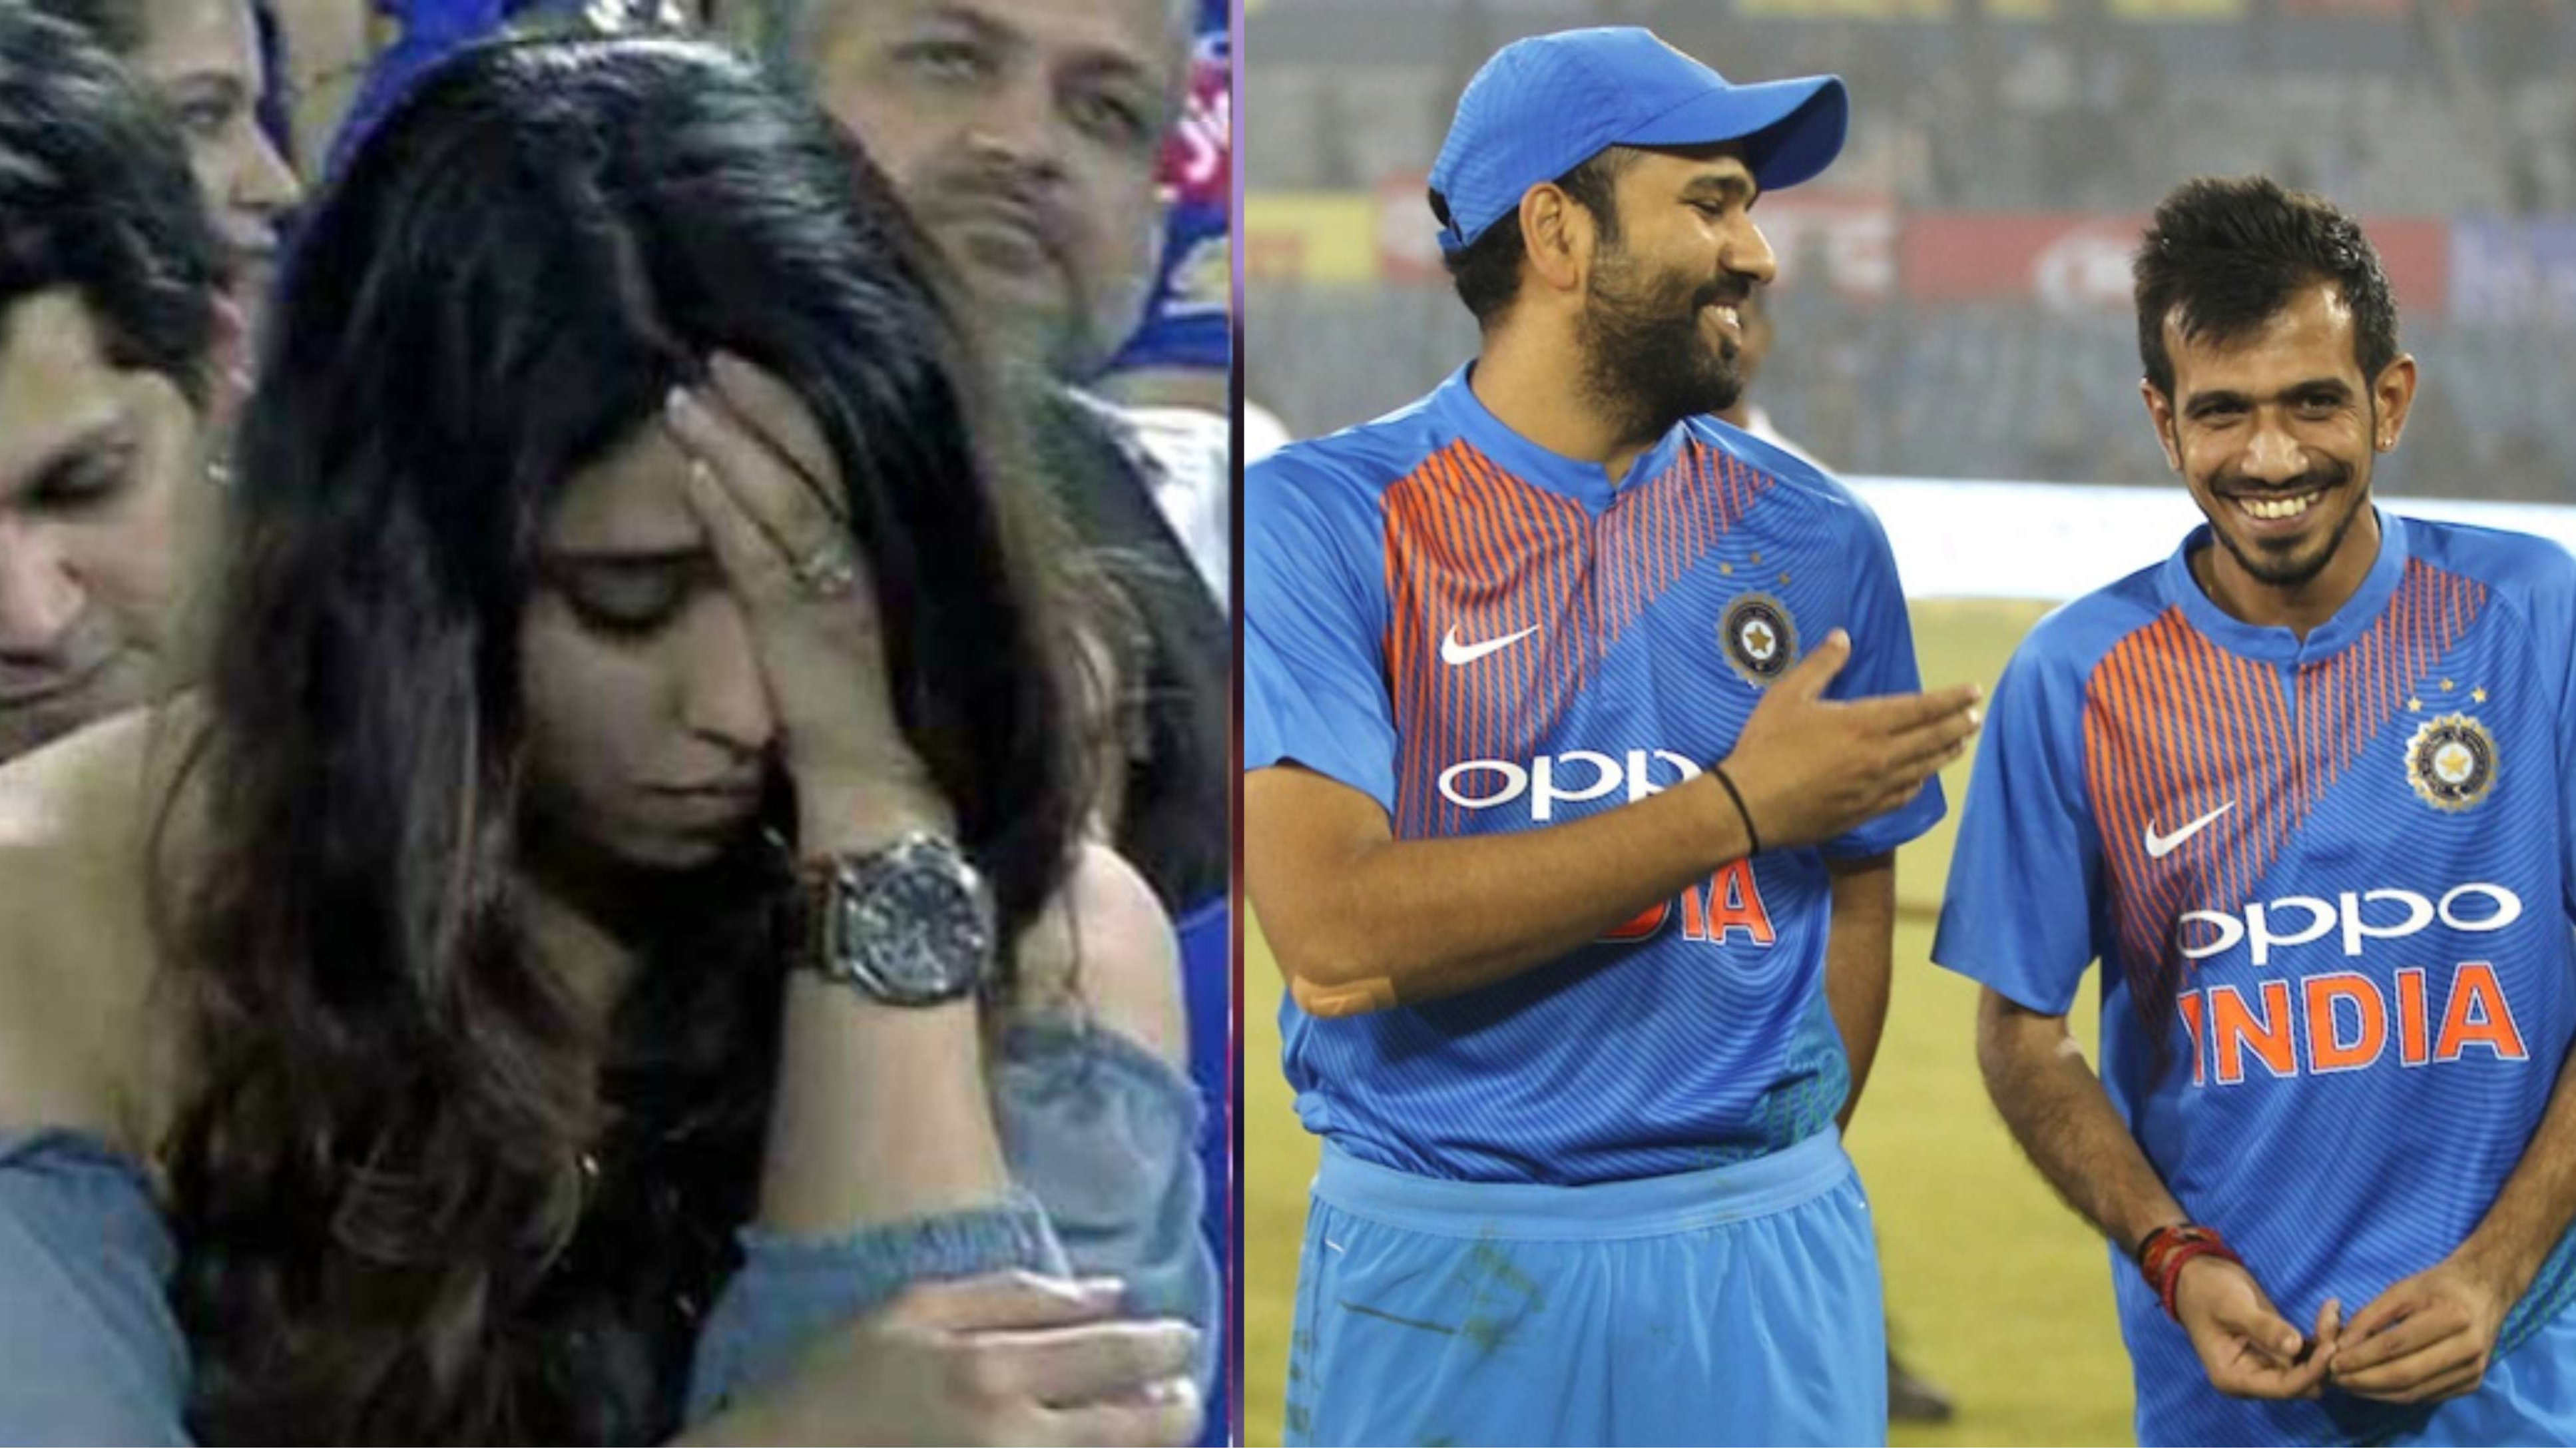 Bromance between Rohit Sharma and Yuzvendra Chahal makes Ritika Sajdeh feel insecure